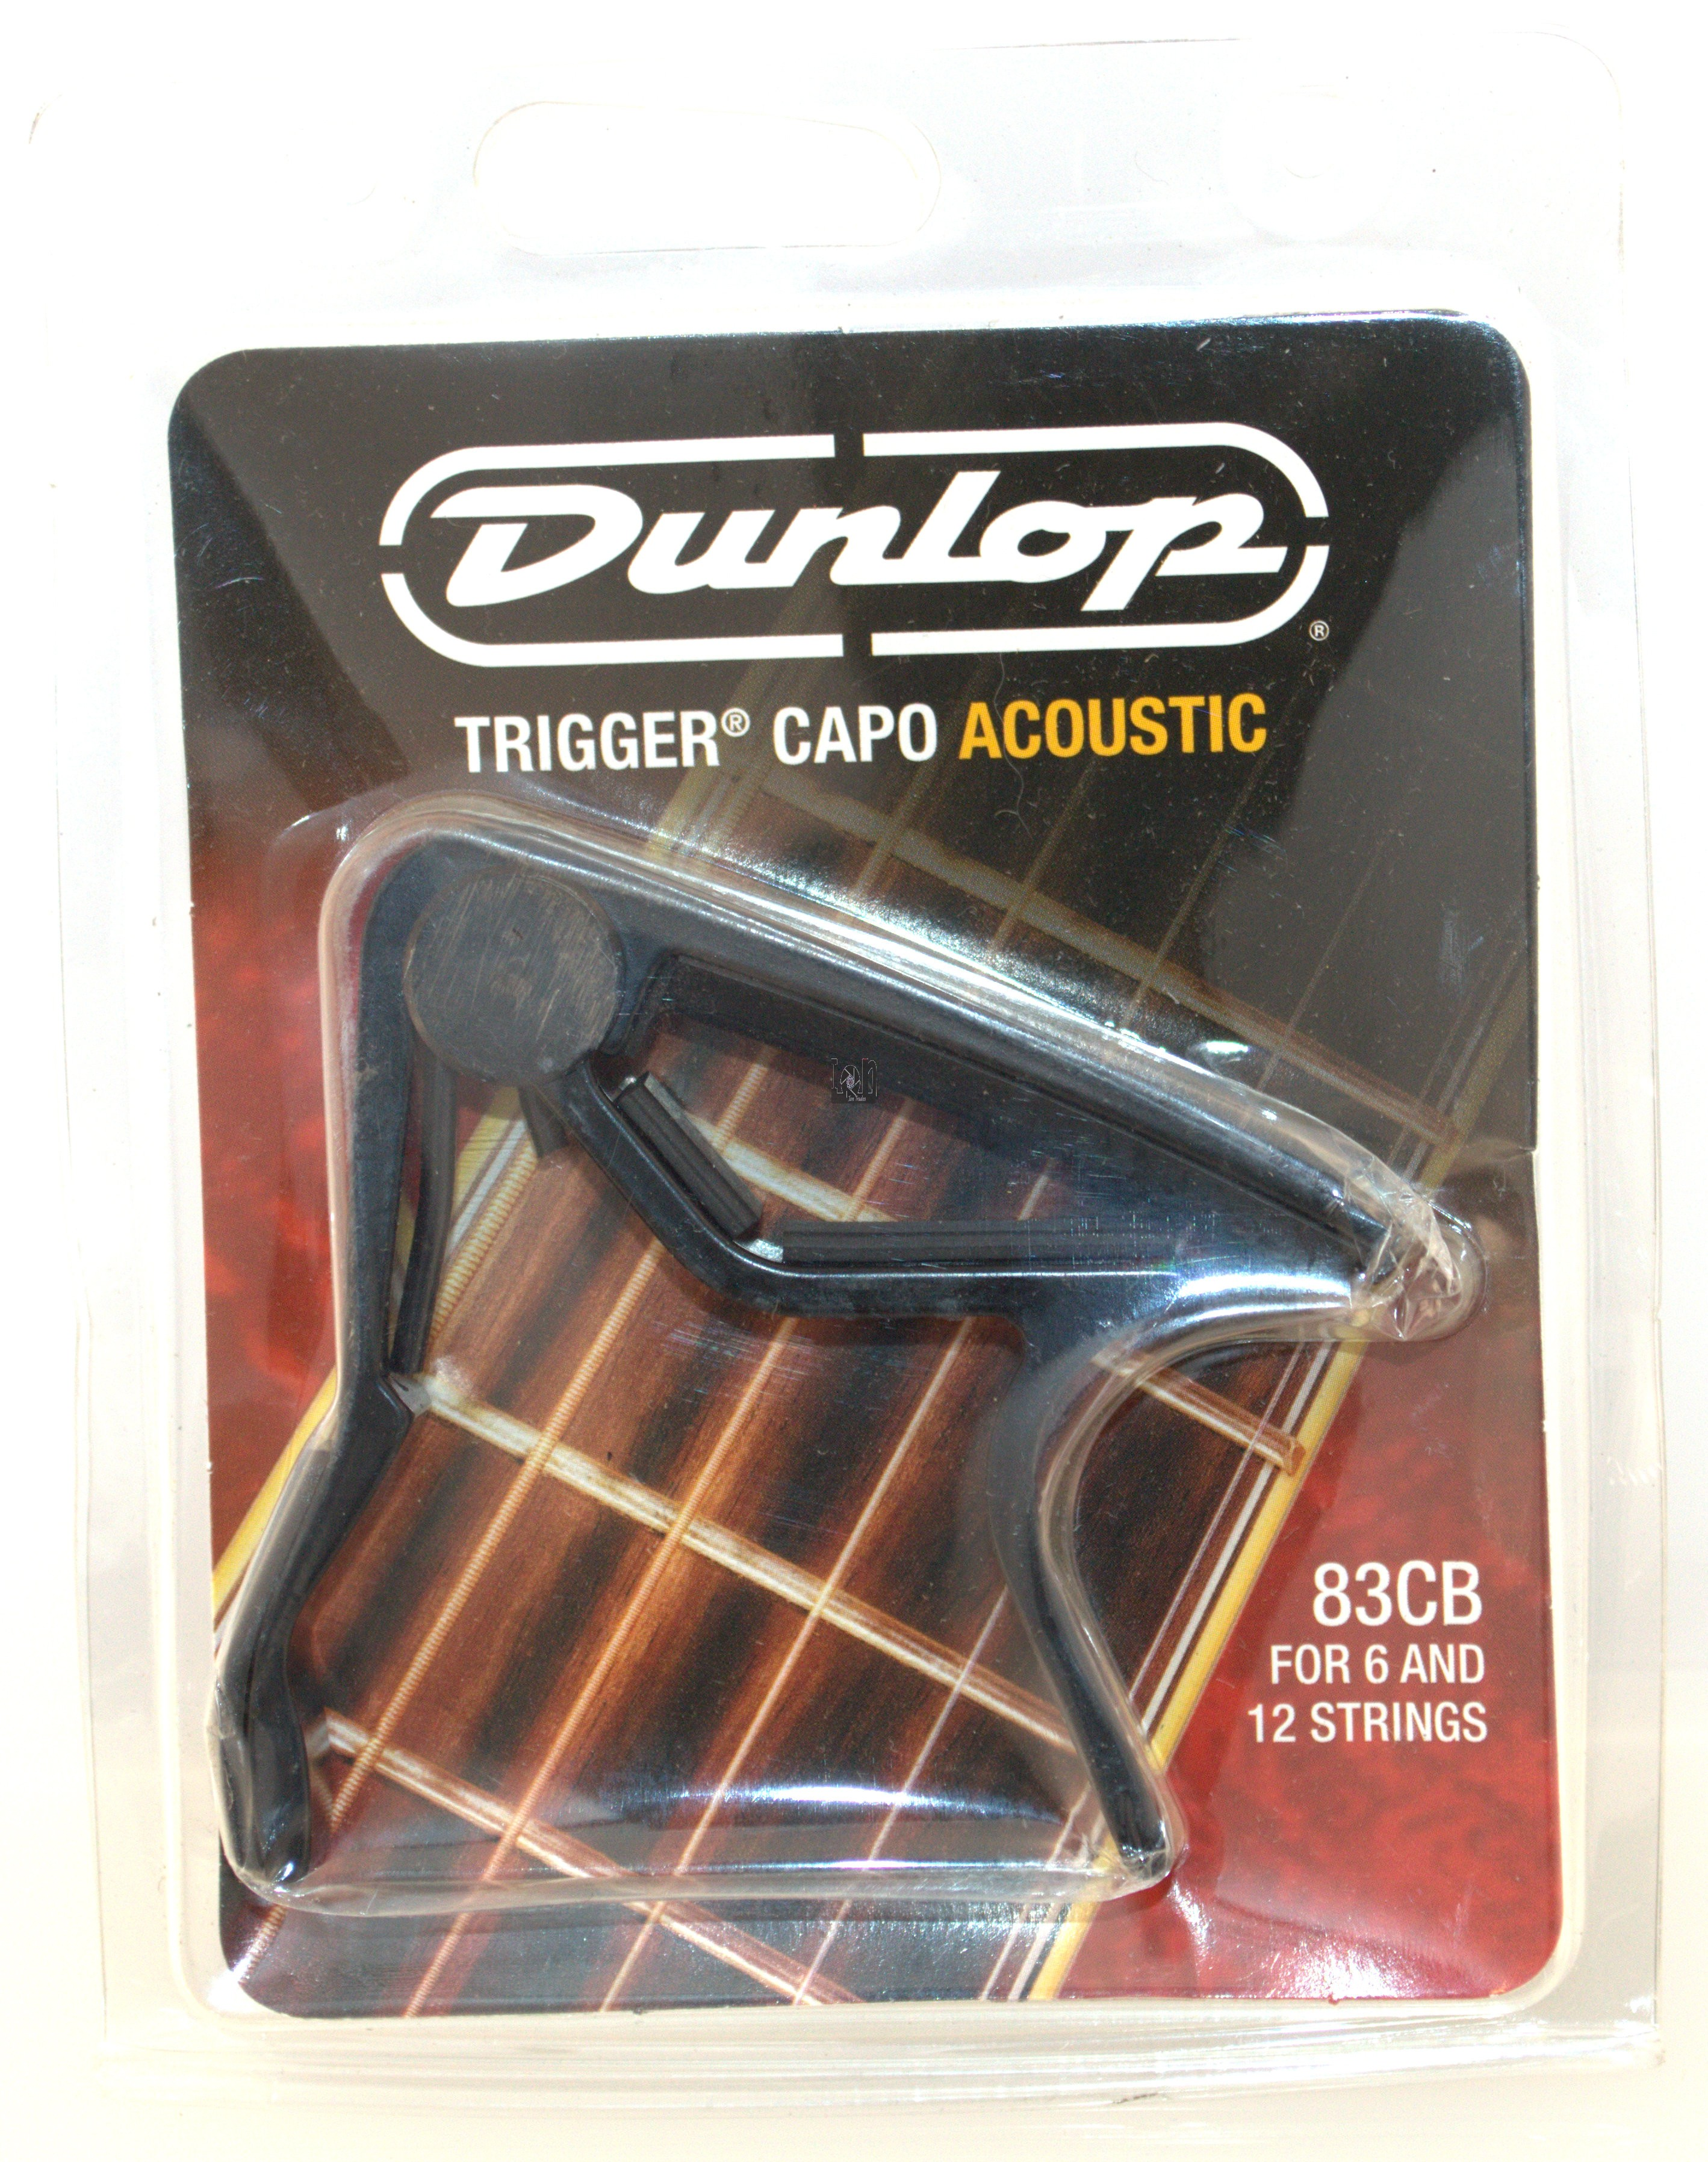 Dunlop Capo Trigger Acoustic Guitar Curved Clamp 83CB 6-12 String